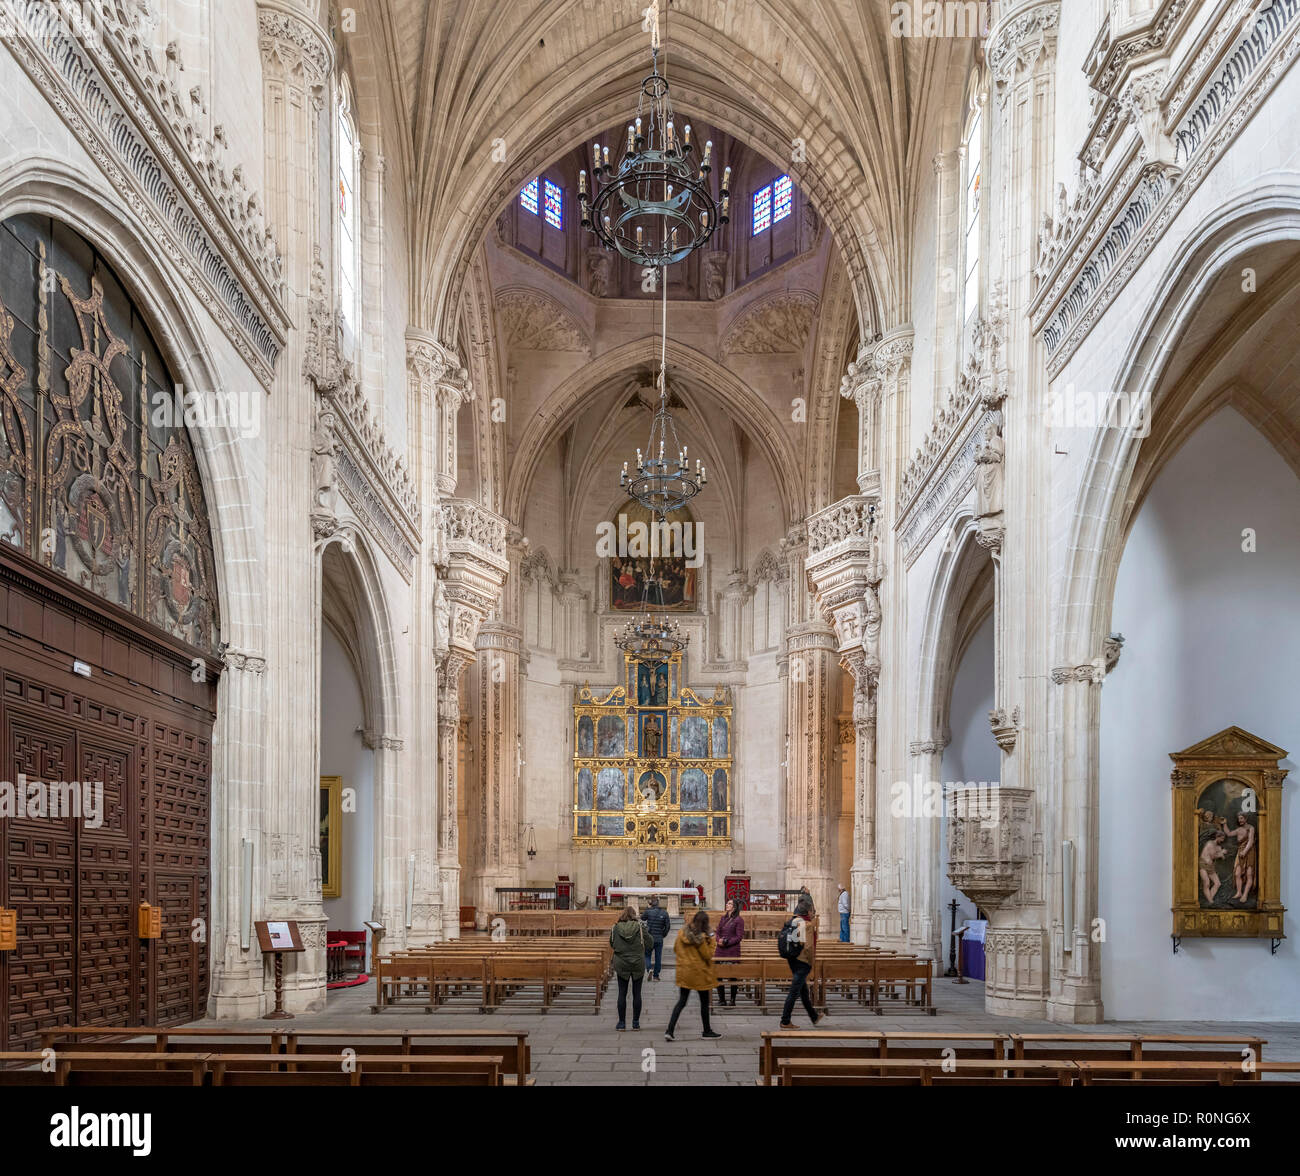 Church in the Monastery of San Juan de los Reyes, Toledo, Castilla-La Mancha, Spain - Stock Image